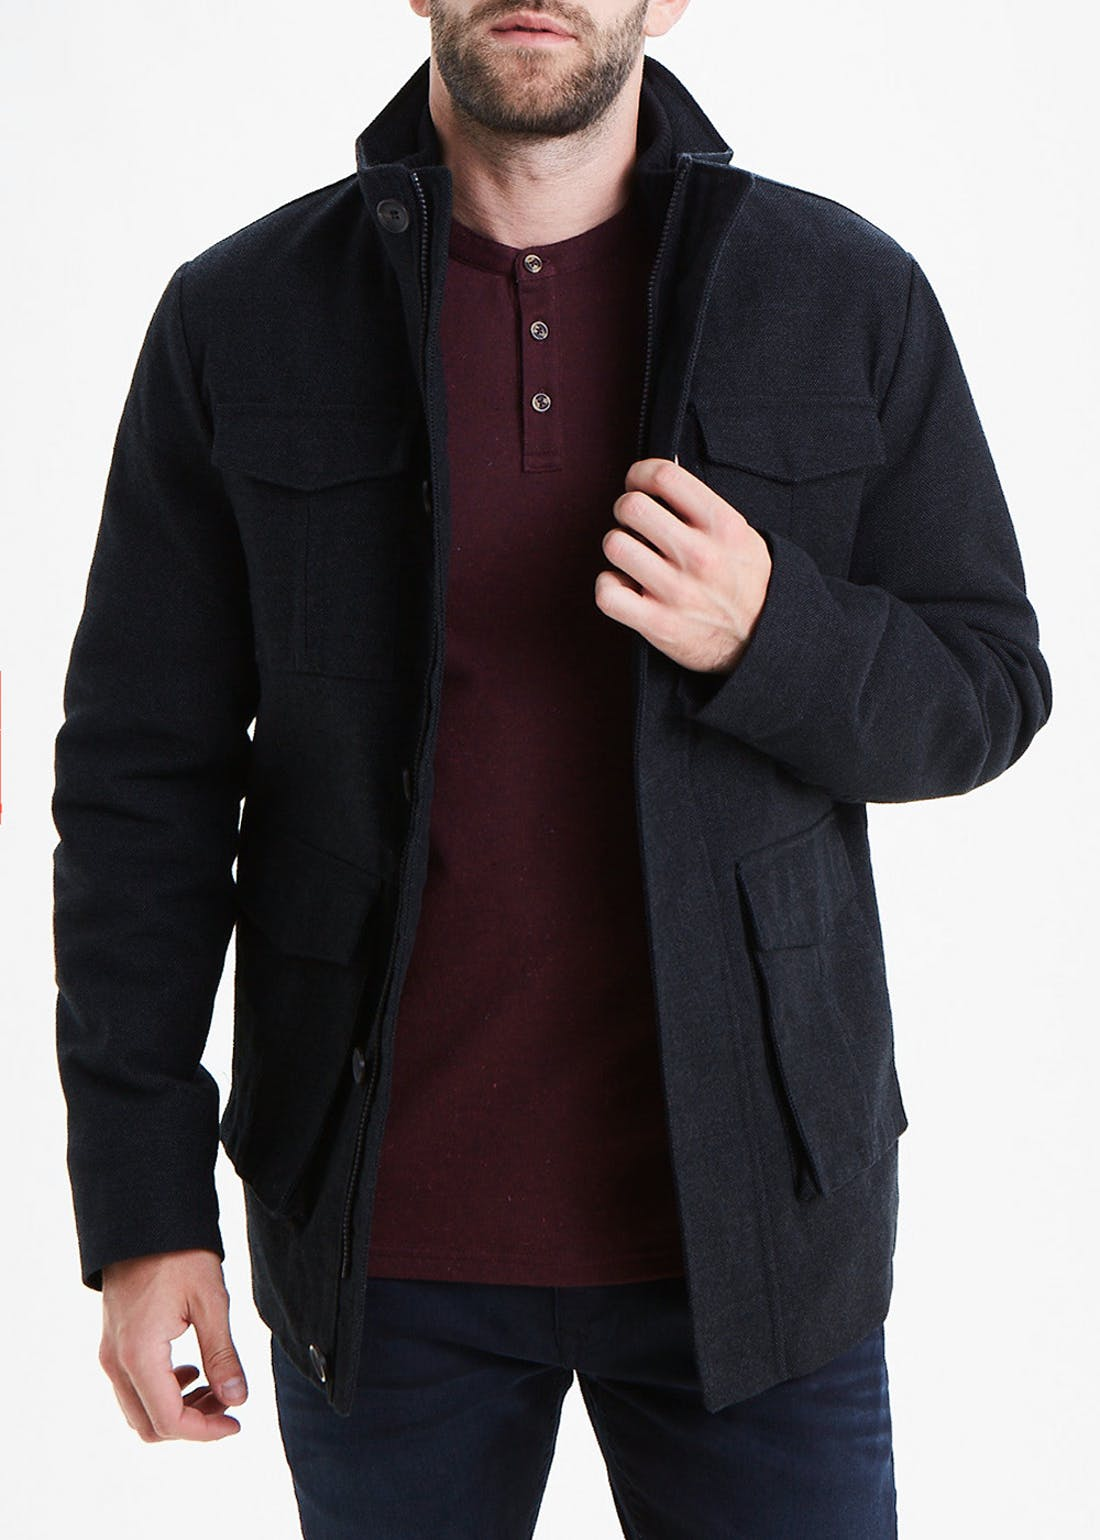 Black Moleskin Jacket